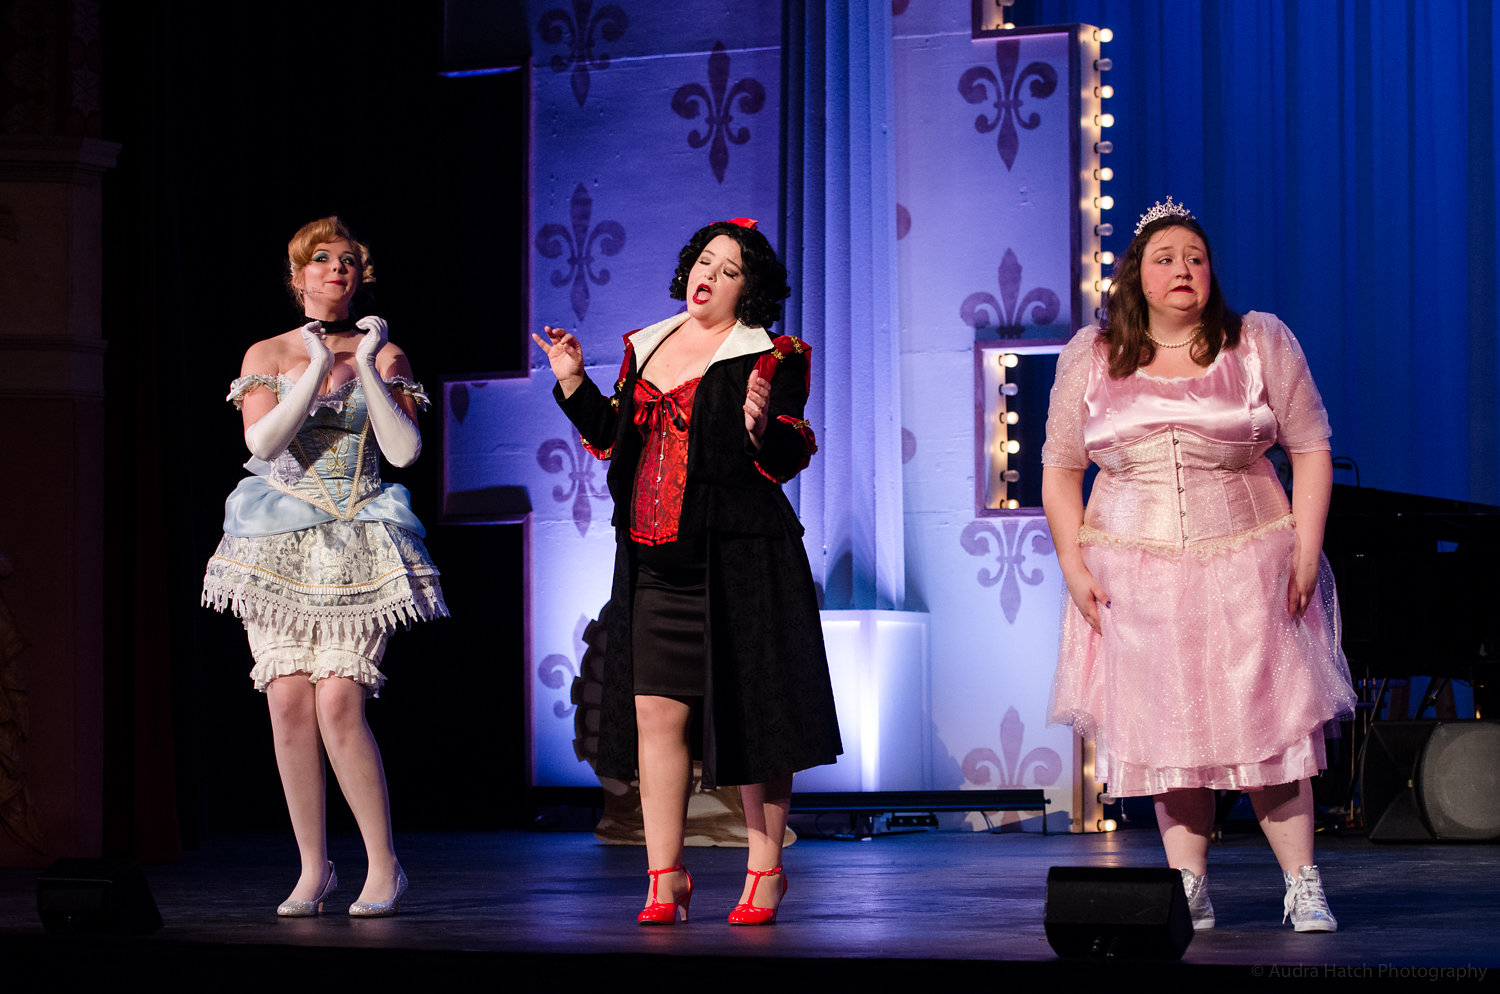 Joanna Clarke (Cinderella), Kelly Caufield (Snow White) and Sarah Thurston (Sleeping Beauty) onstage during a dress rehearsal for 'Disenchanted.' The musical opens at the Biddeford City Theater tonight at 7:30 p.m. COURTESY PHOTO/Audra Hatch.